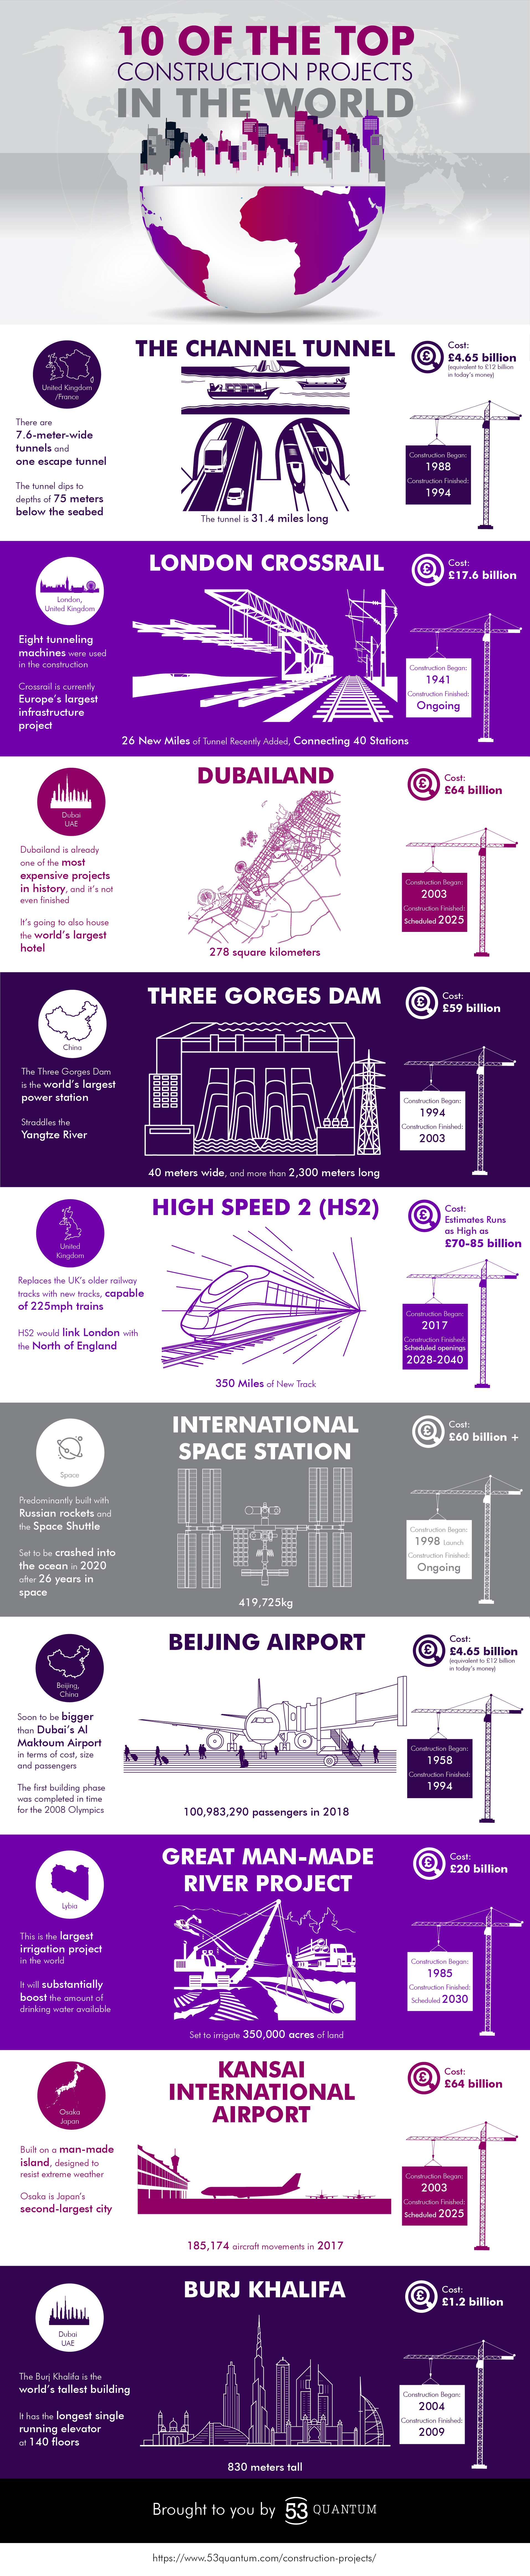 Infographic : 10 of the Top Construction Projects in the World